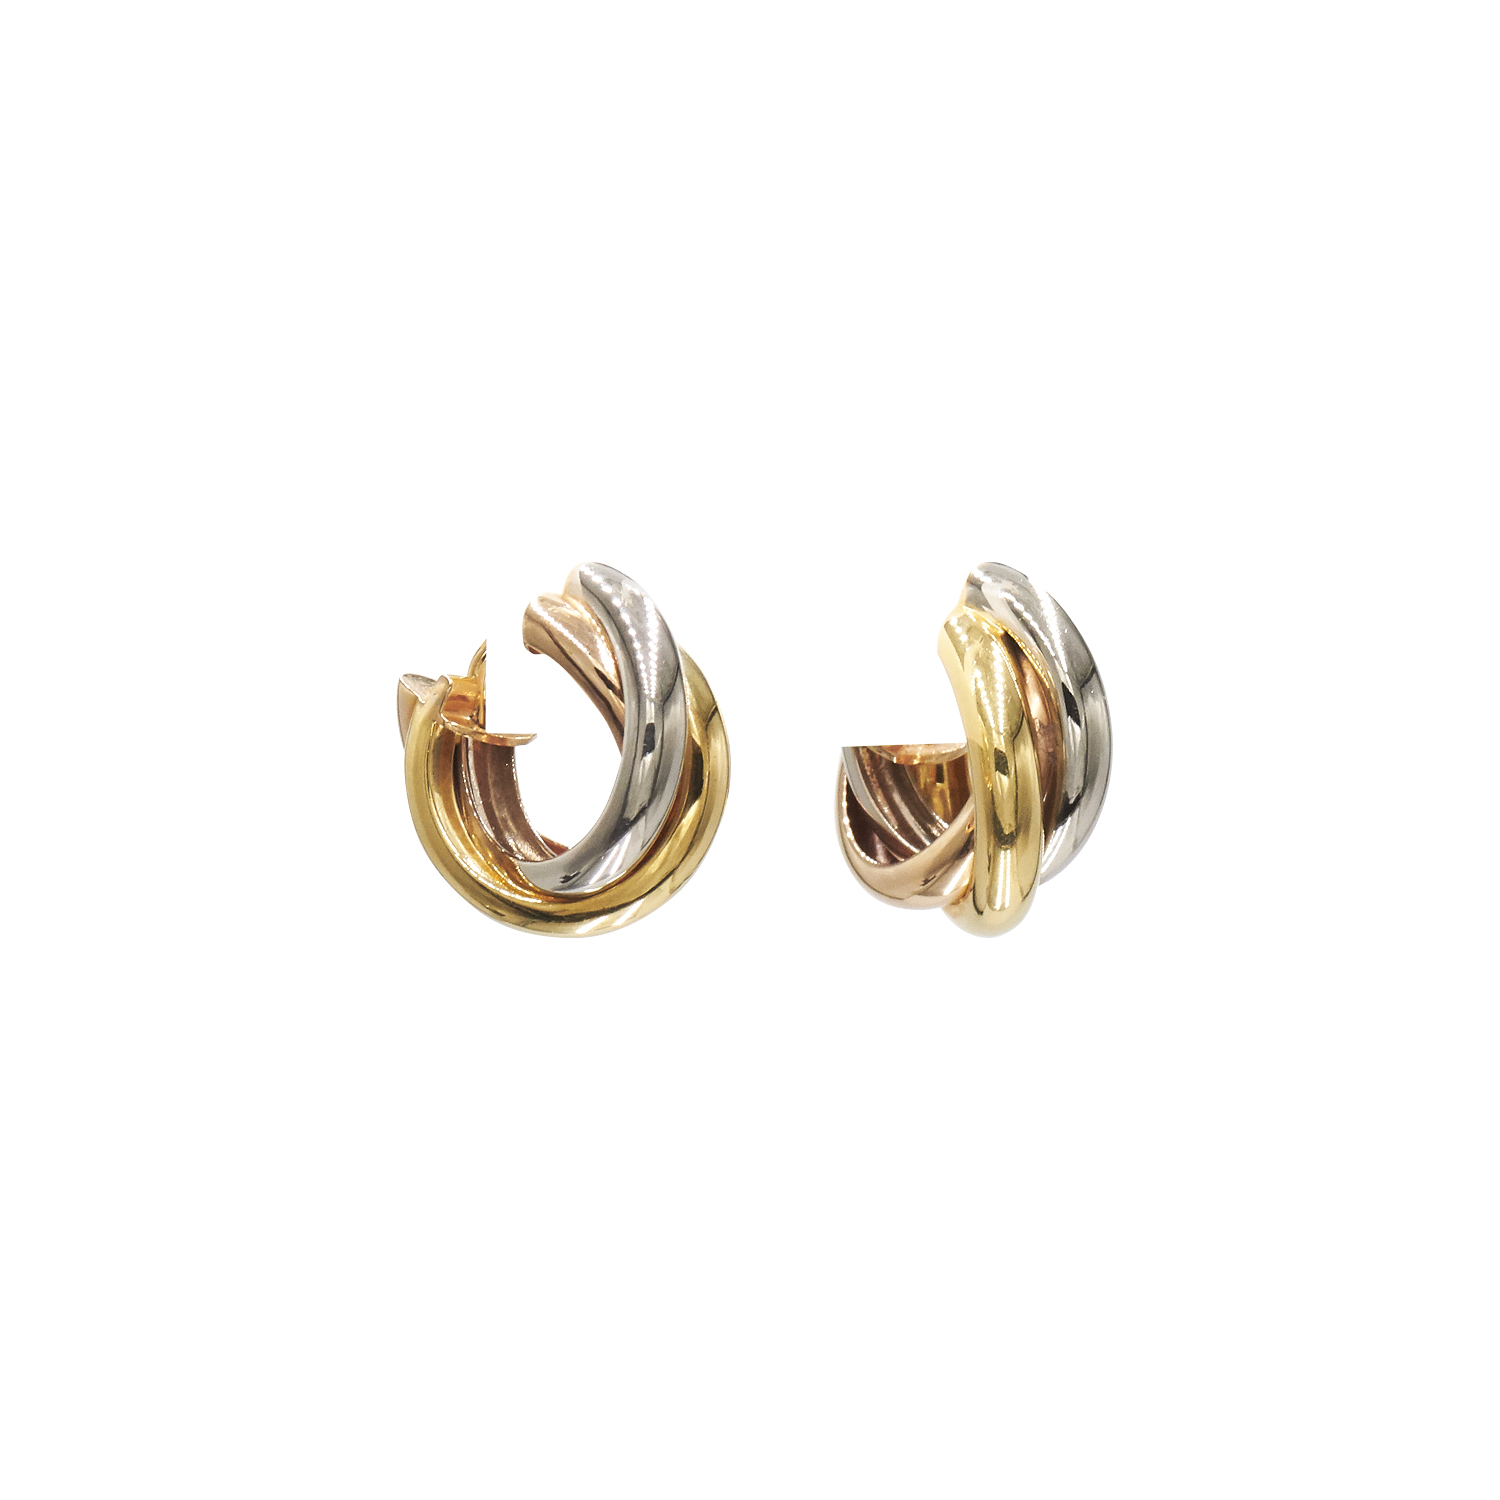 18K Tri-color Gold Trinity Hoop Earrings by Cartier